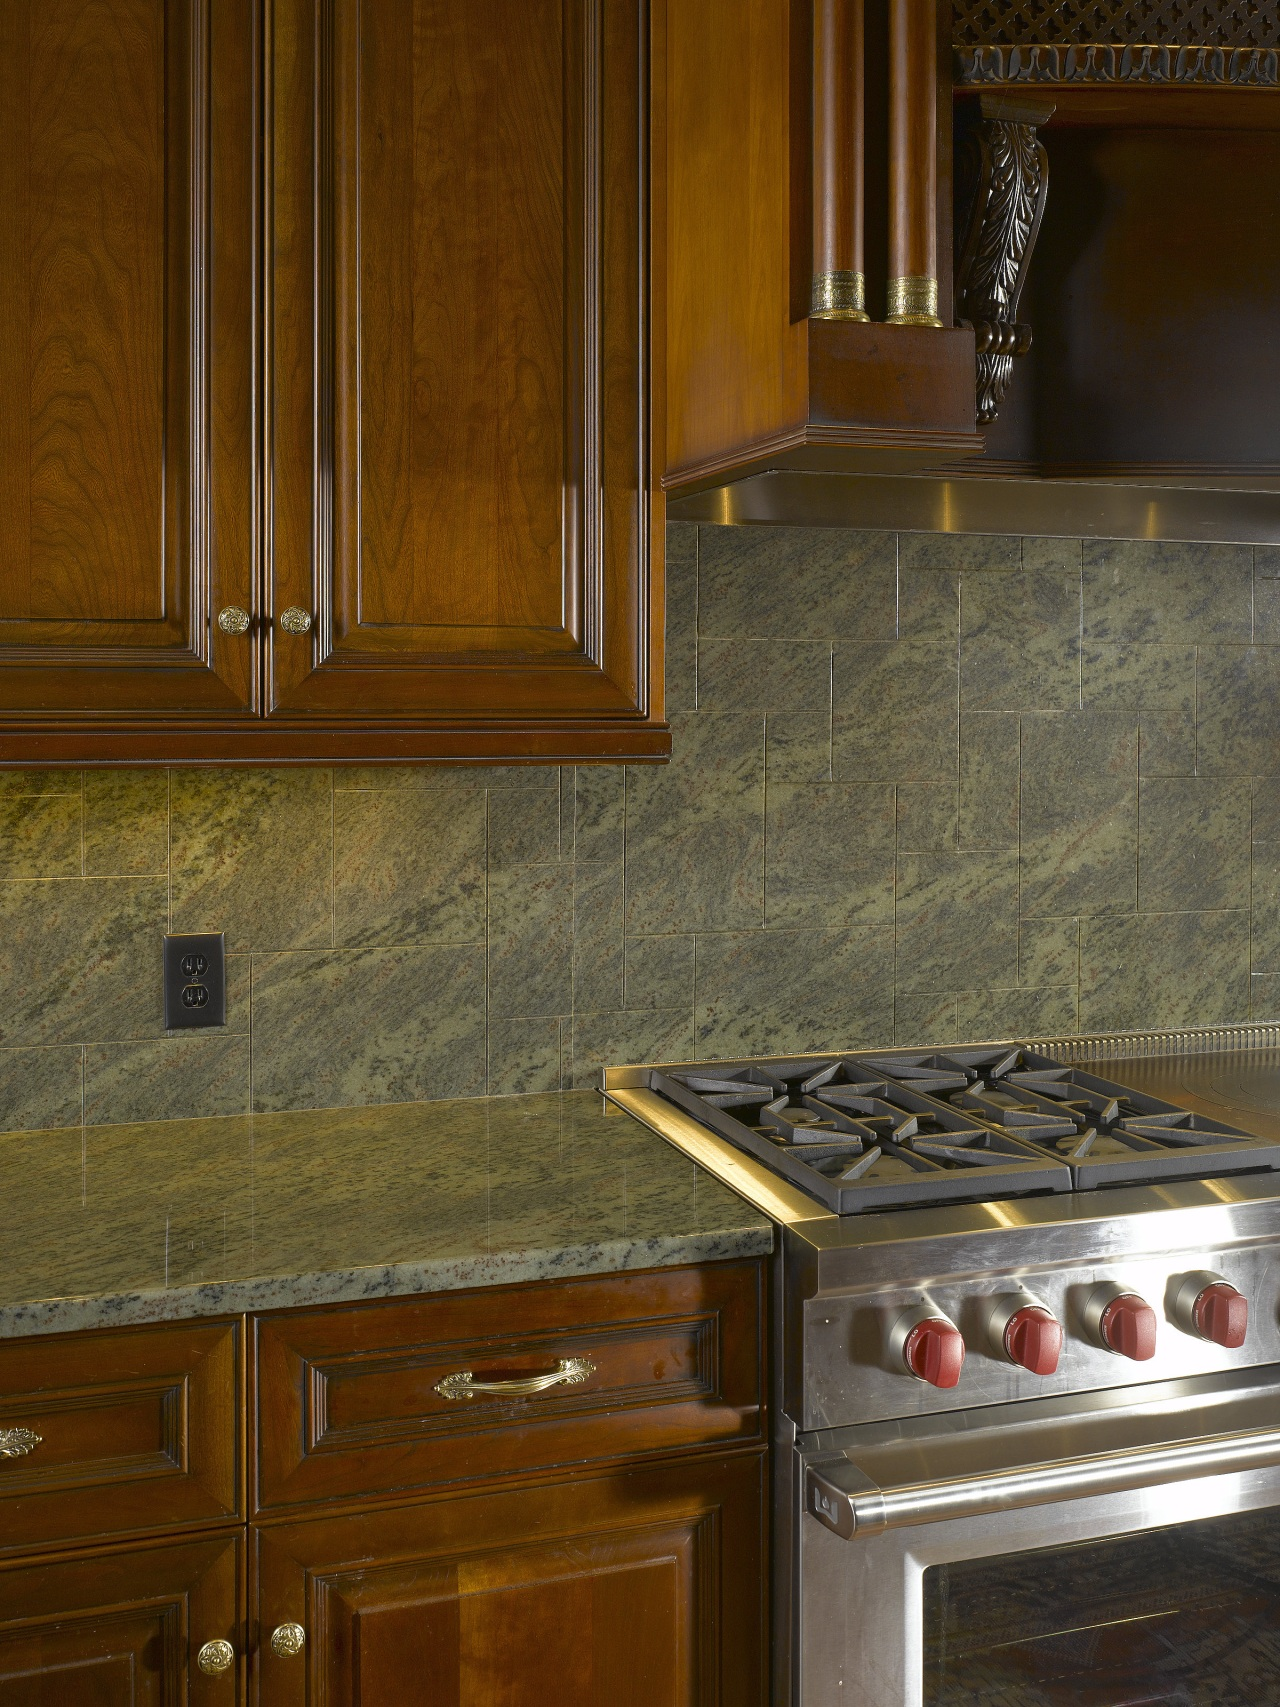 View of a stone countertop by A Touch cabinetry, countertop, floor, flooring, hardwood, interior design, kitchen, room, tile, under cabinet lighting, wall, wood, wood flooring, wood stain, brown